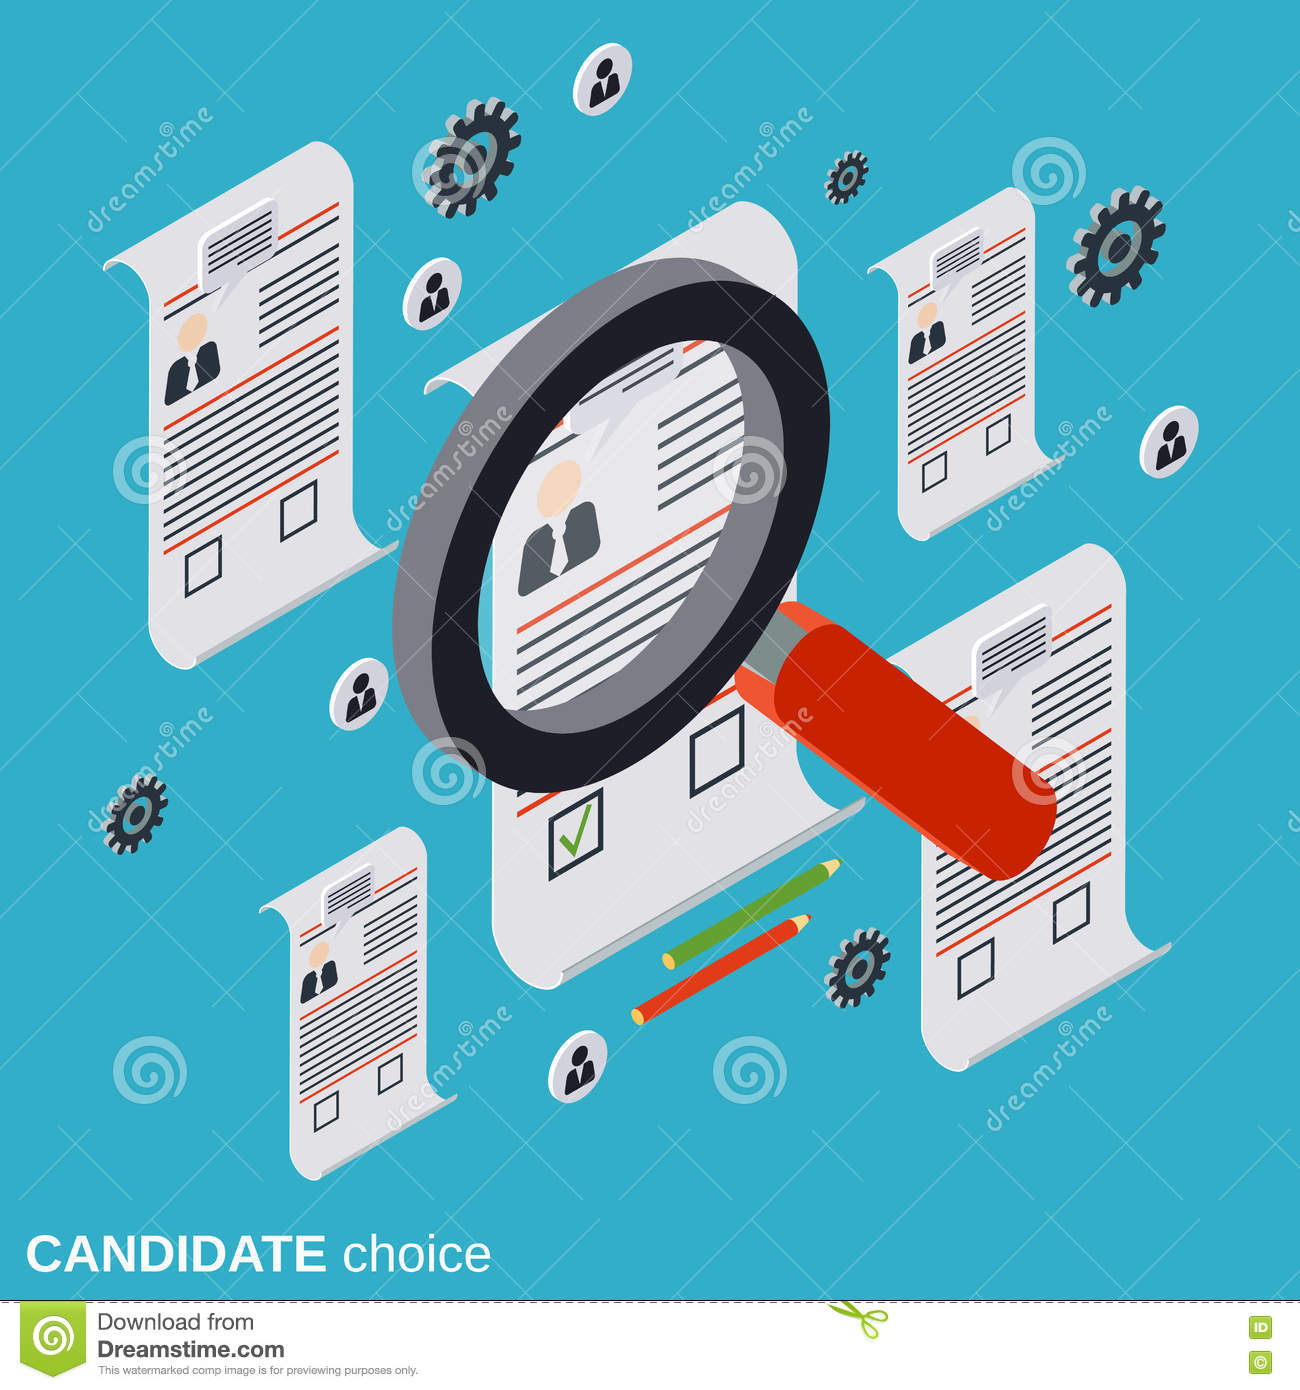 Resume Analysis Impressive Candidate Choice Resume Analysis Recruitment Human Resources